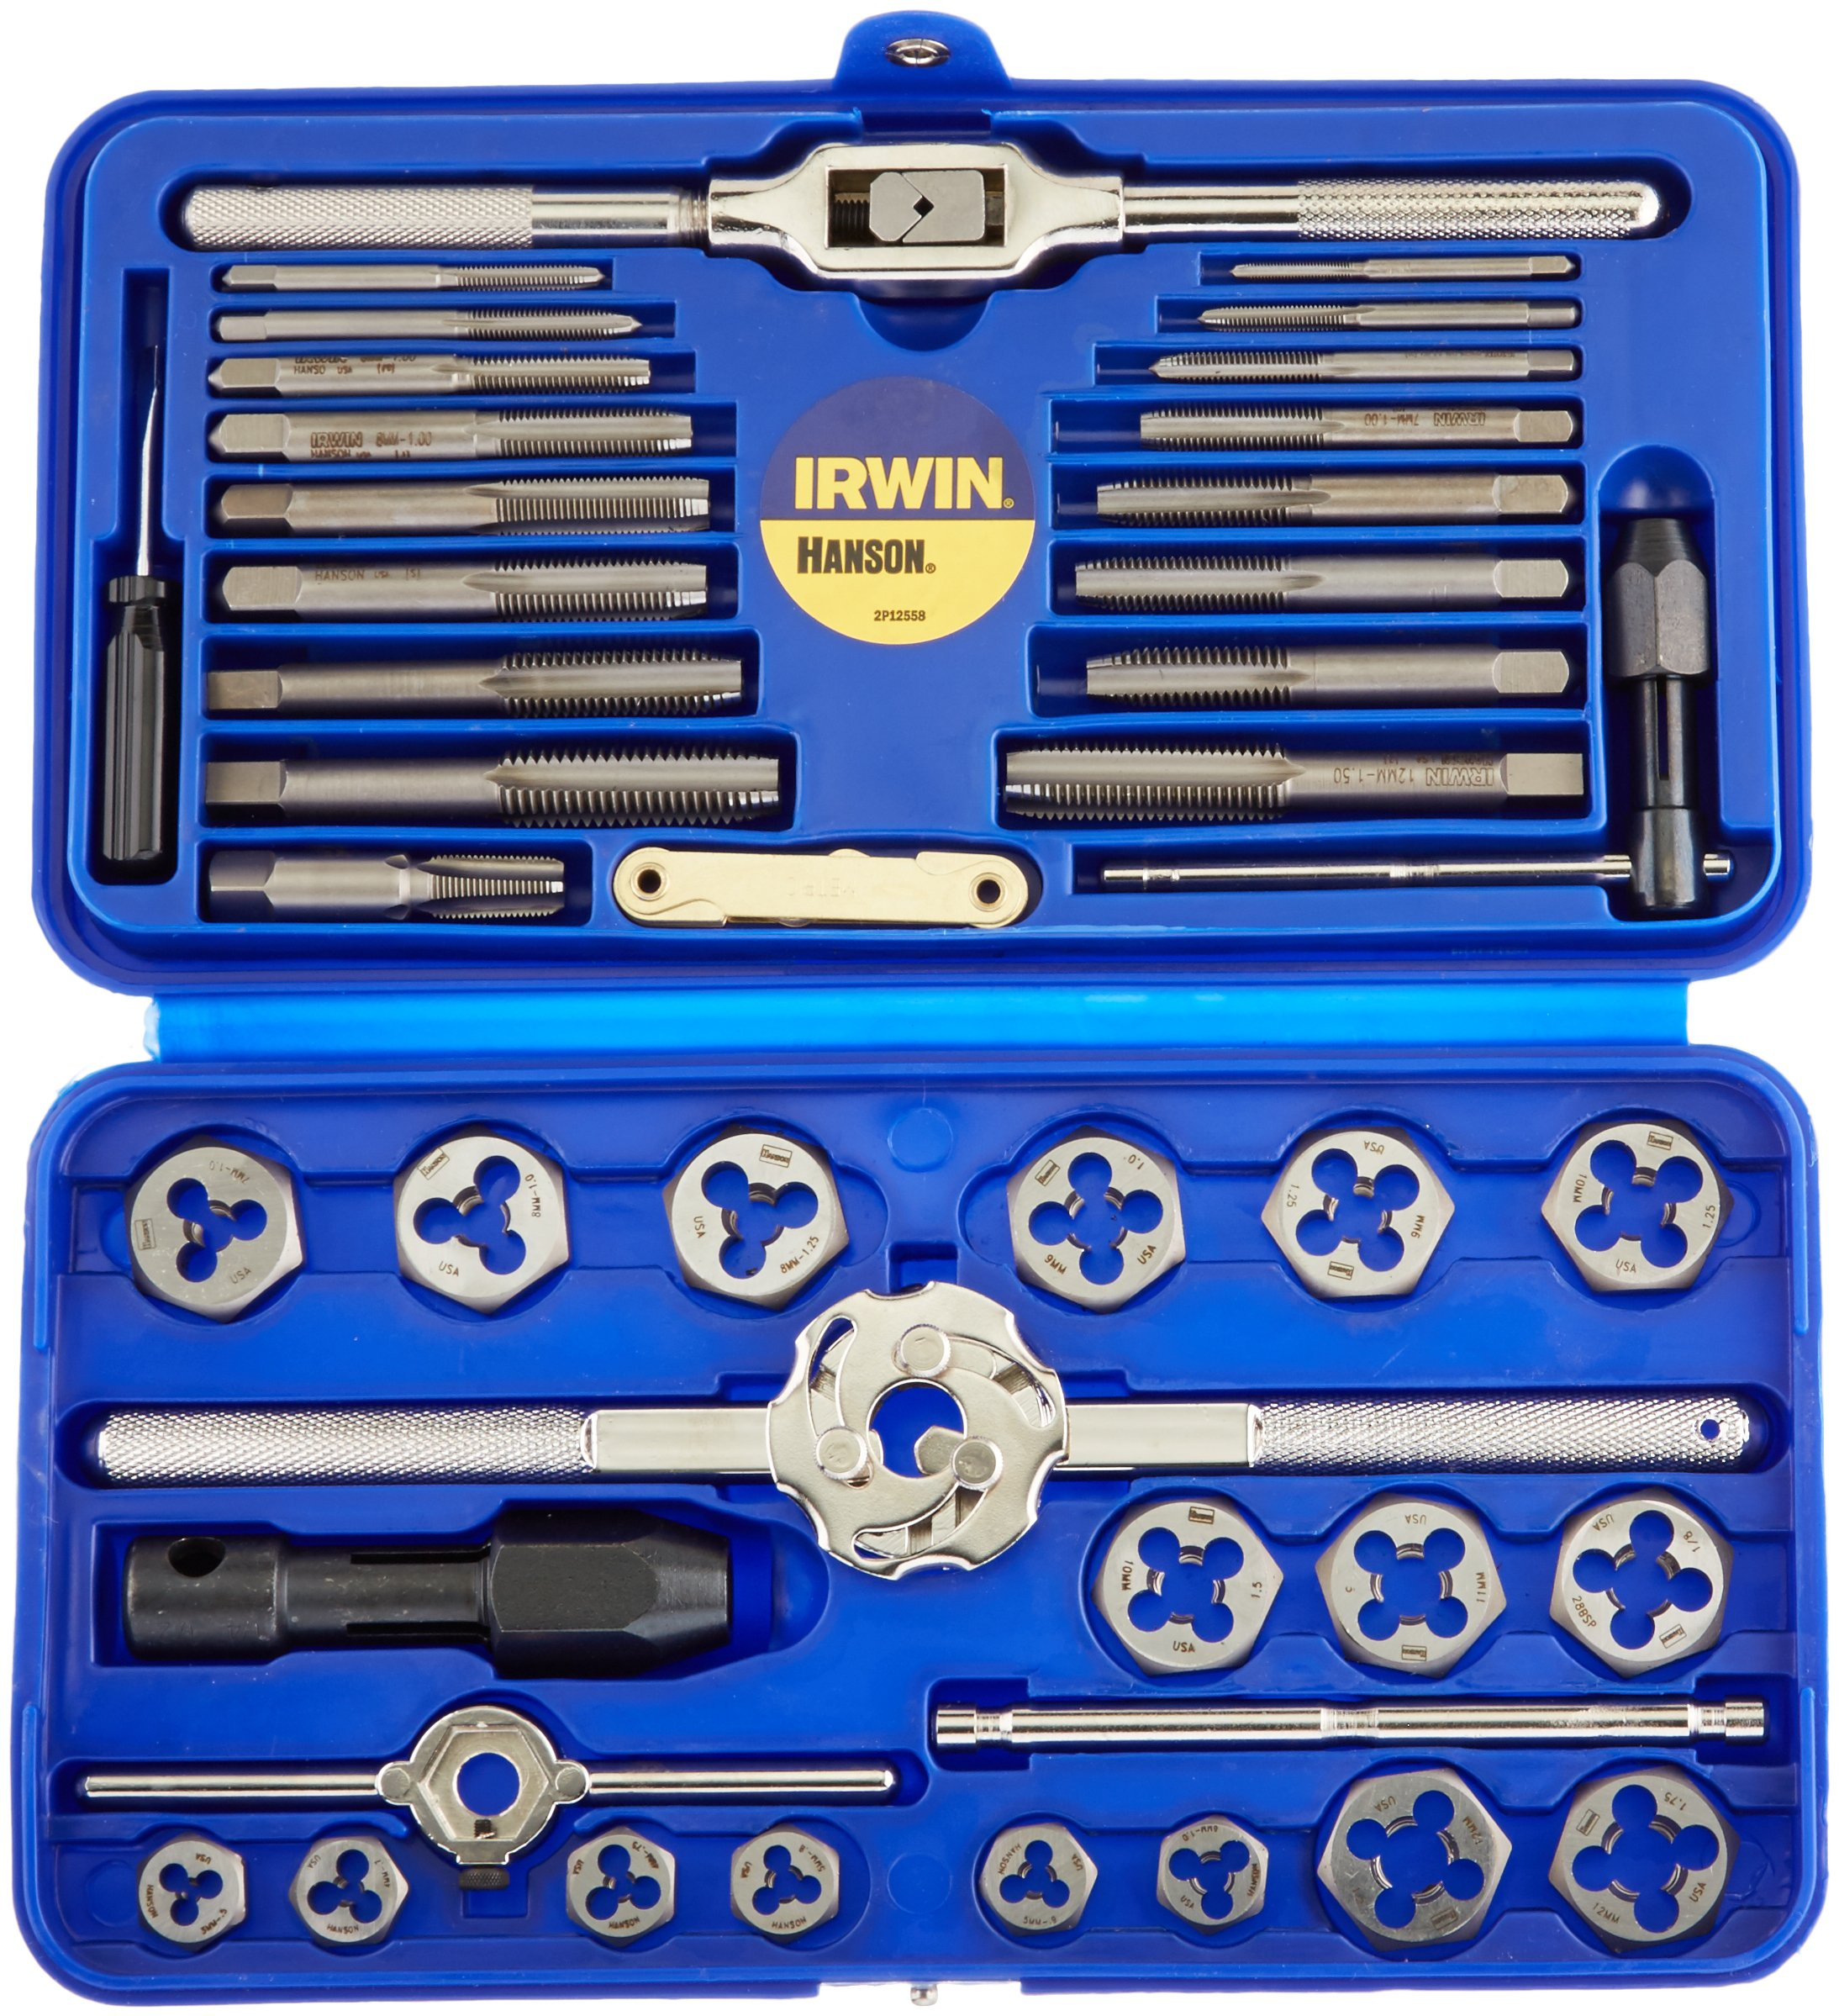 IRWIN Tools Metric Tap and Hex Die Set, 41-Piece (26317) by Irwin Tools